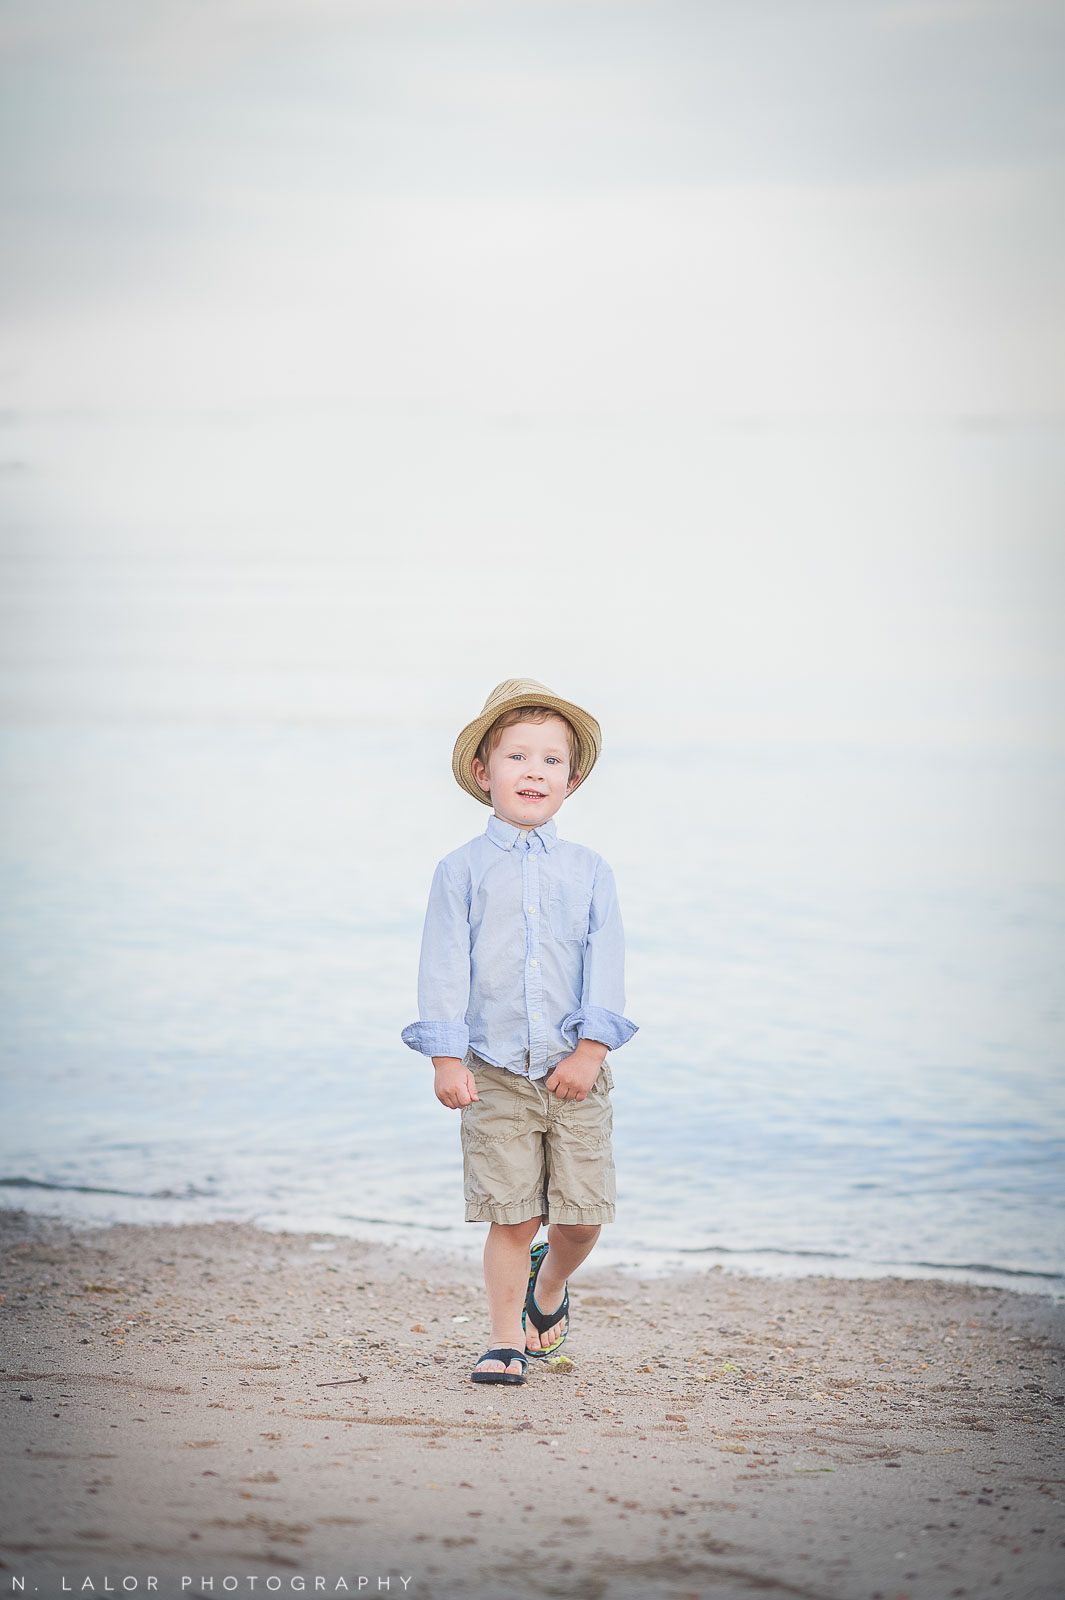 nlalor-photography-063014-styled-boy-beach-session-stamford-ct-3.jpg